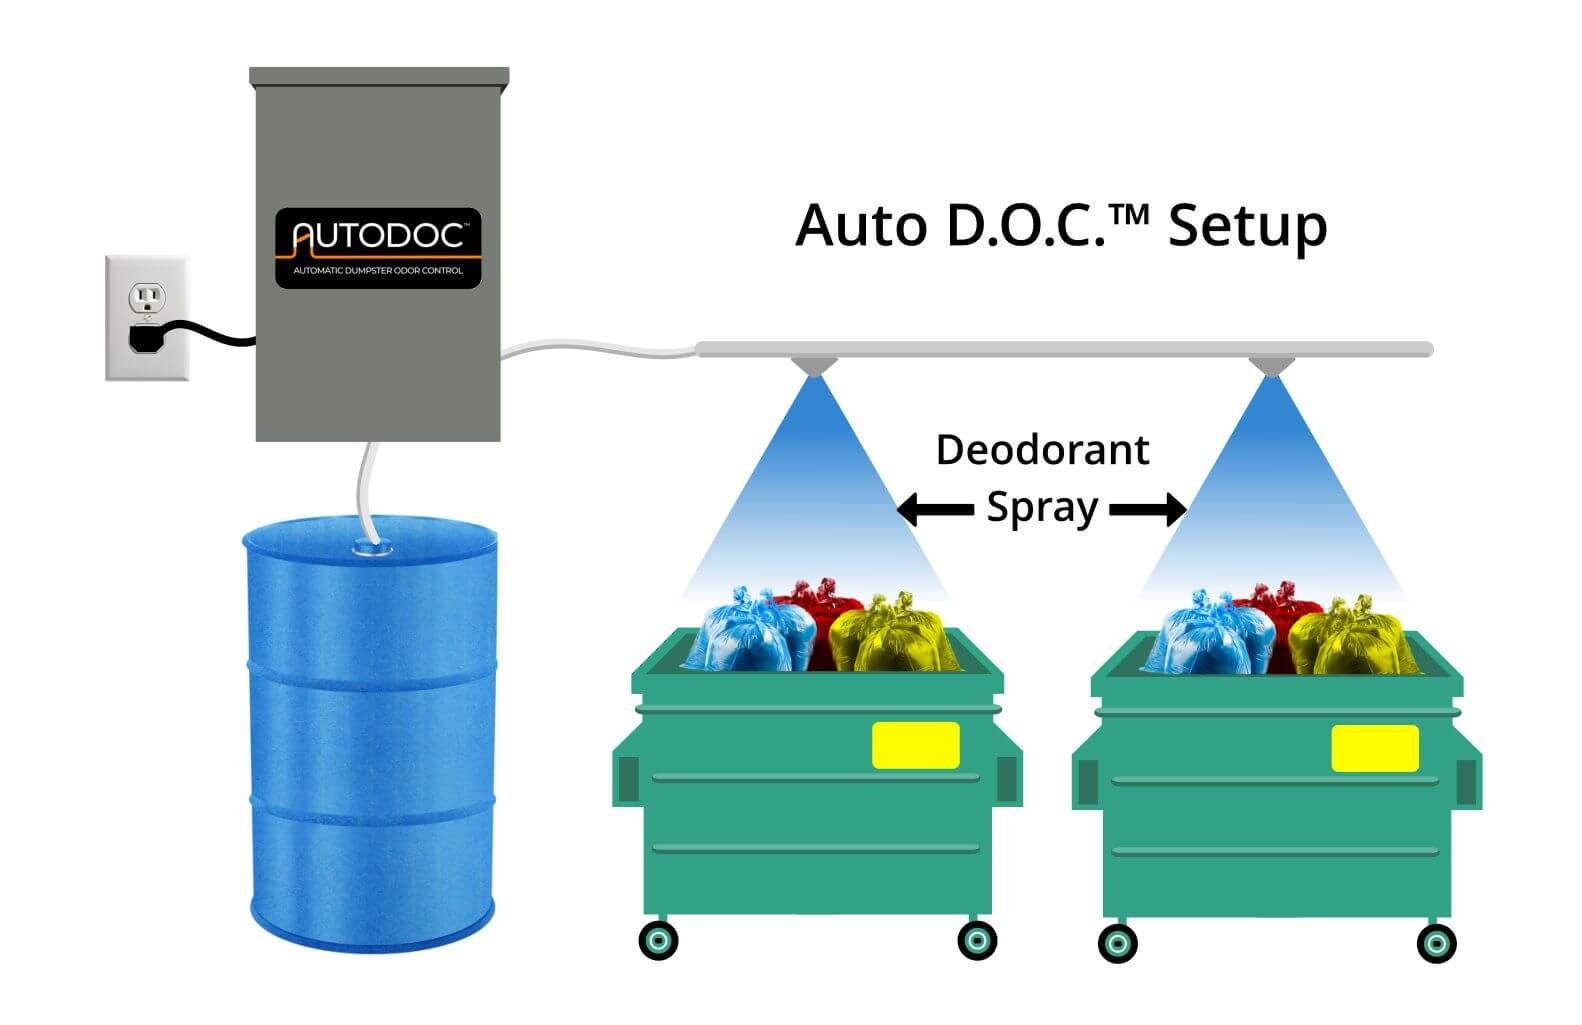 Dumpster Trash Room Spray Odor Control System